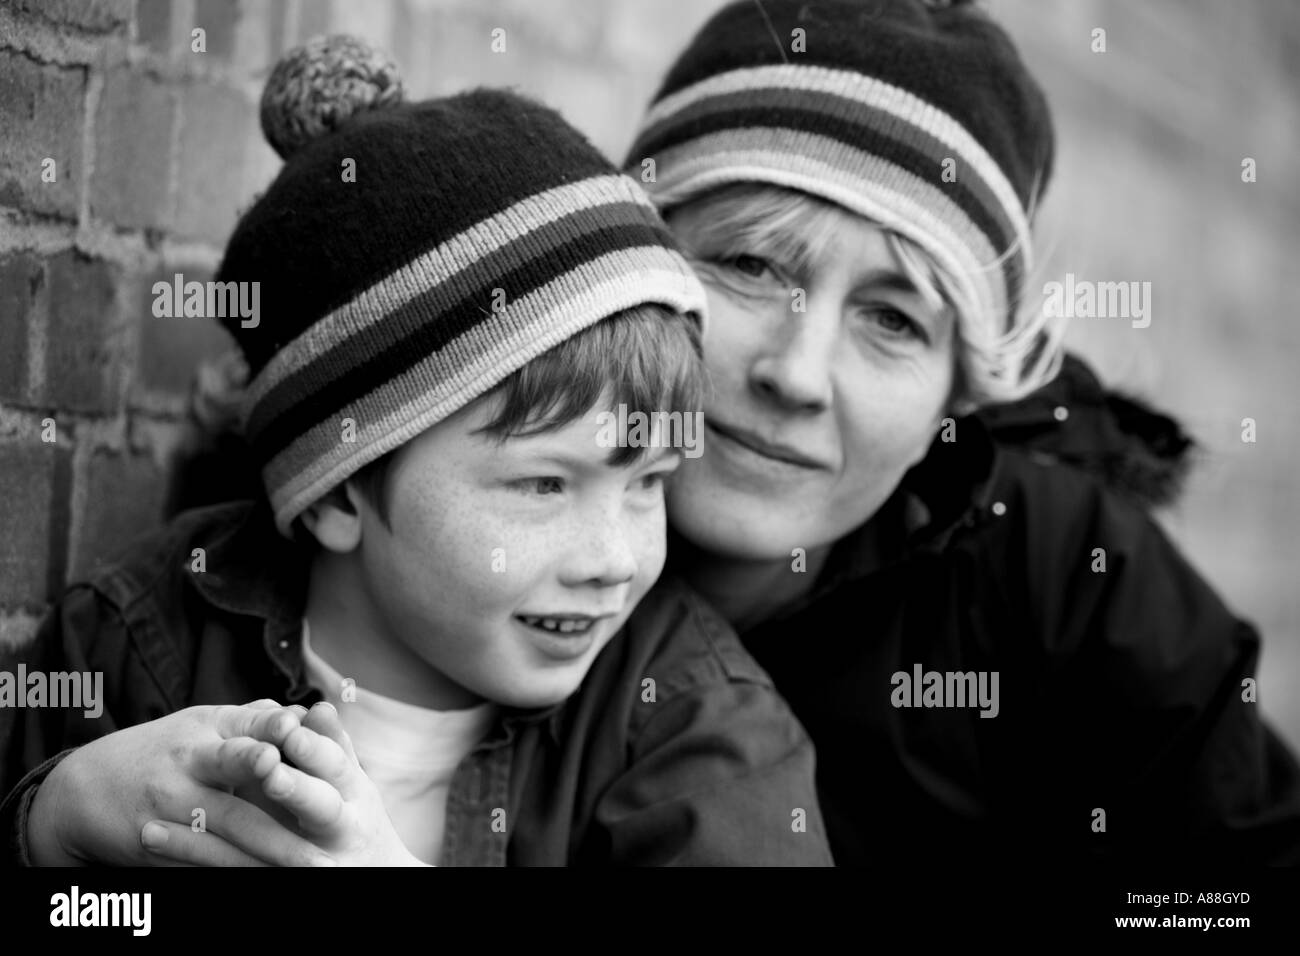 Horizontal black and white portrait of mother with her young son wearing matching bobble hats outdoors in urban setting